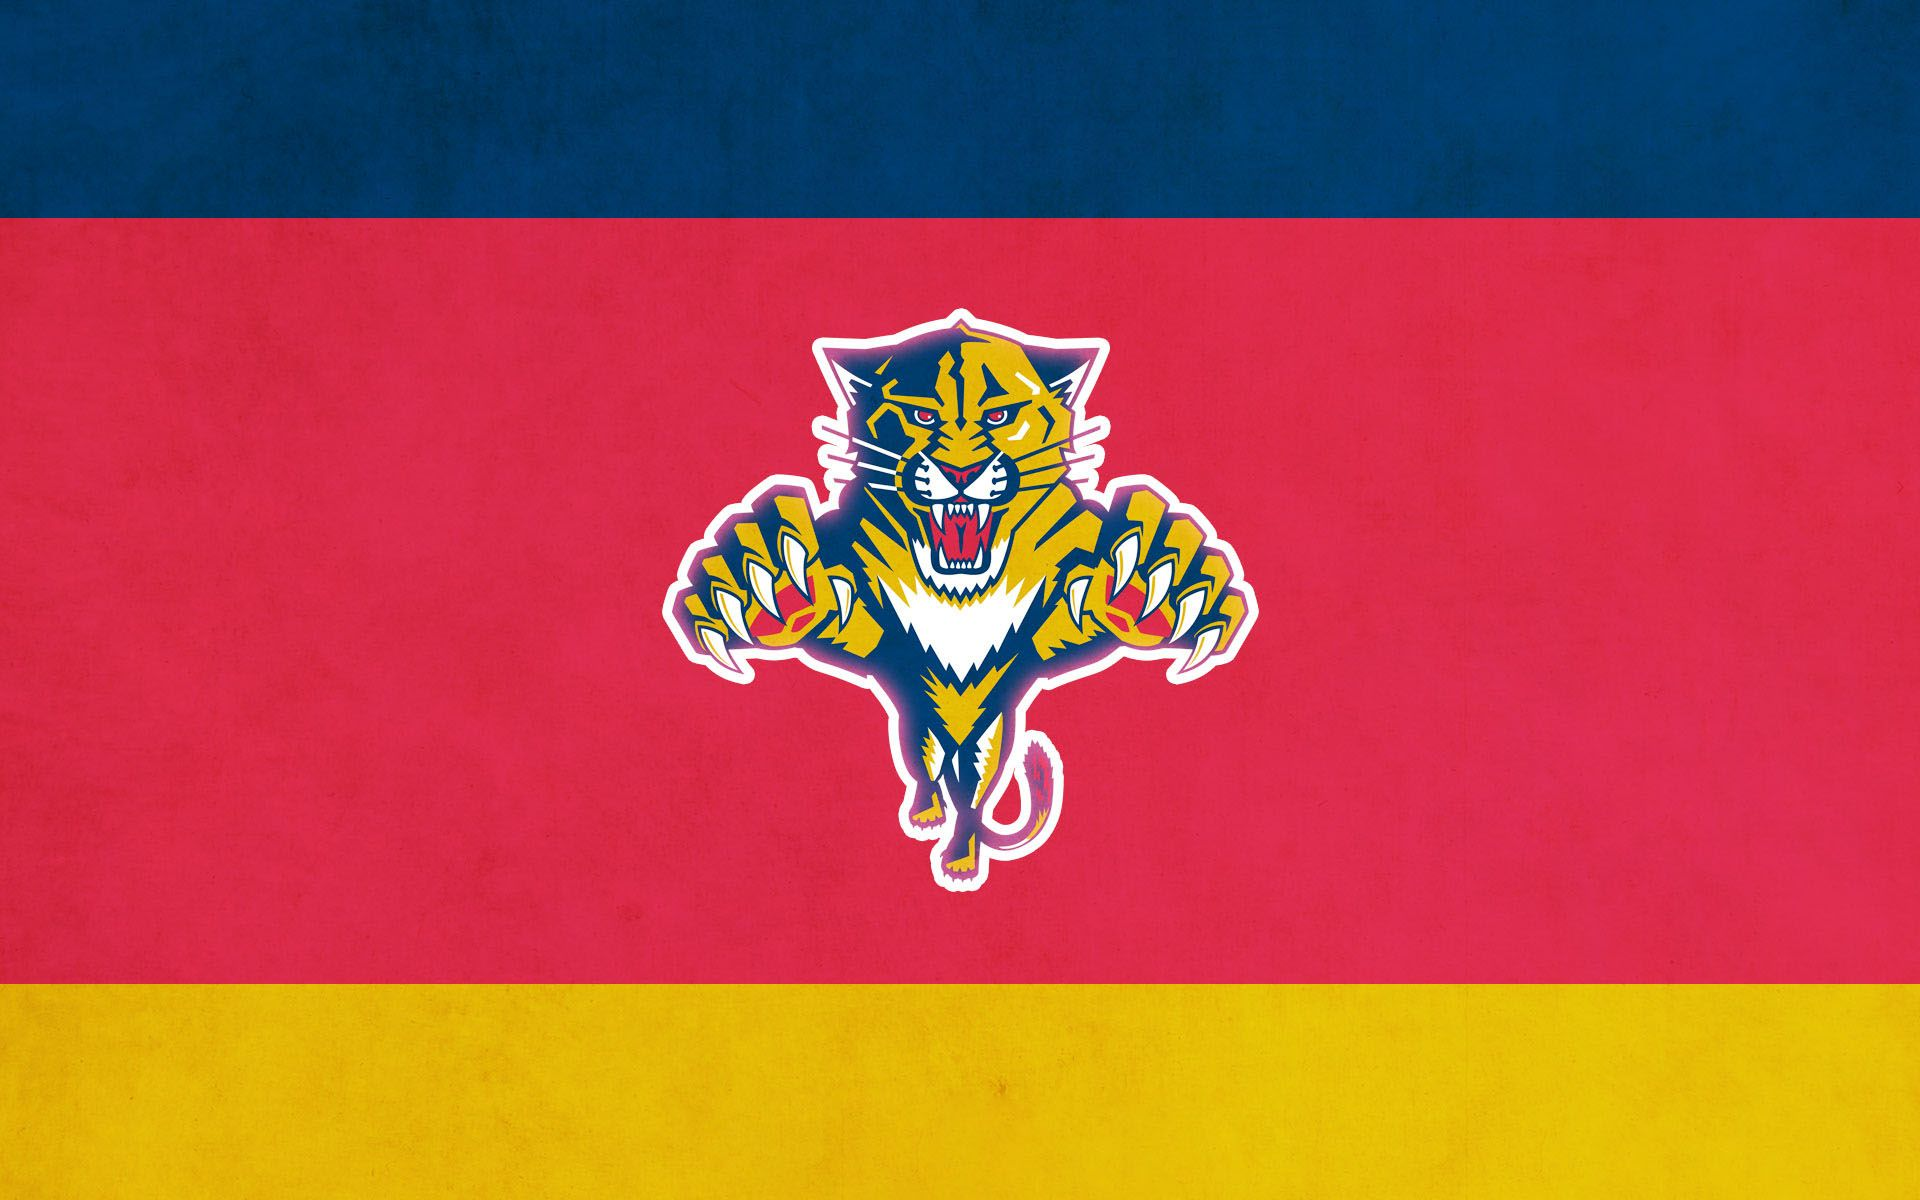 1920x1200 Florida Panthers Wallpaper 7 - 1920 X 1200 | stmed.net